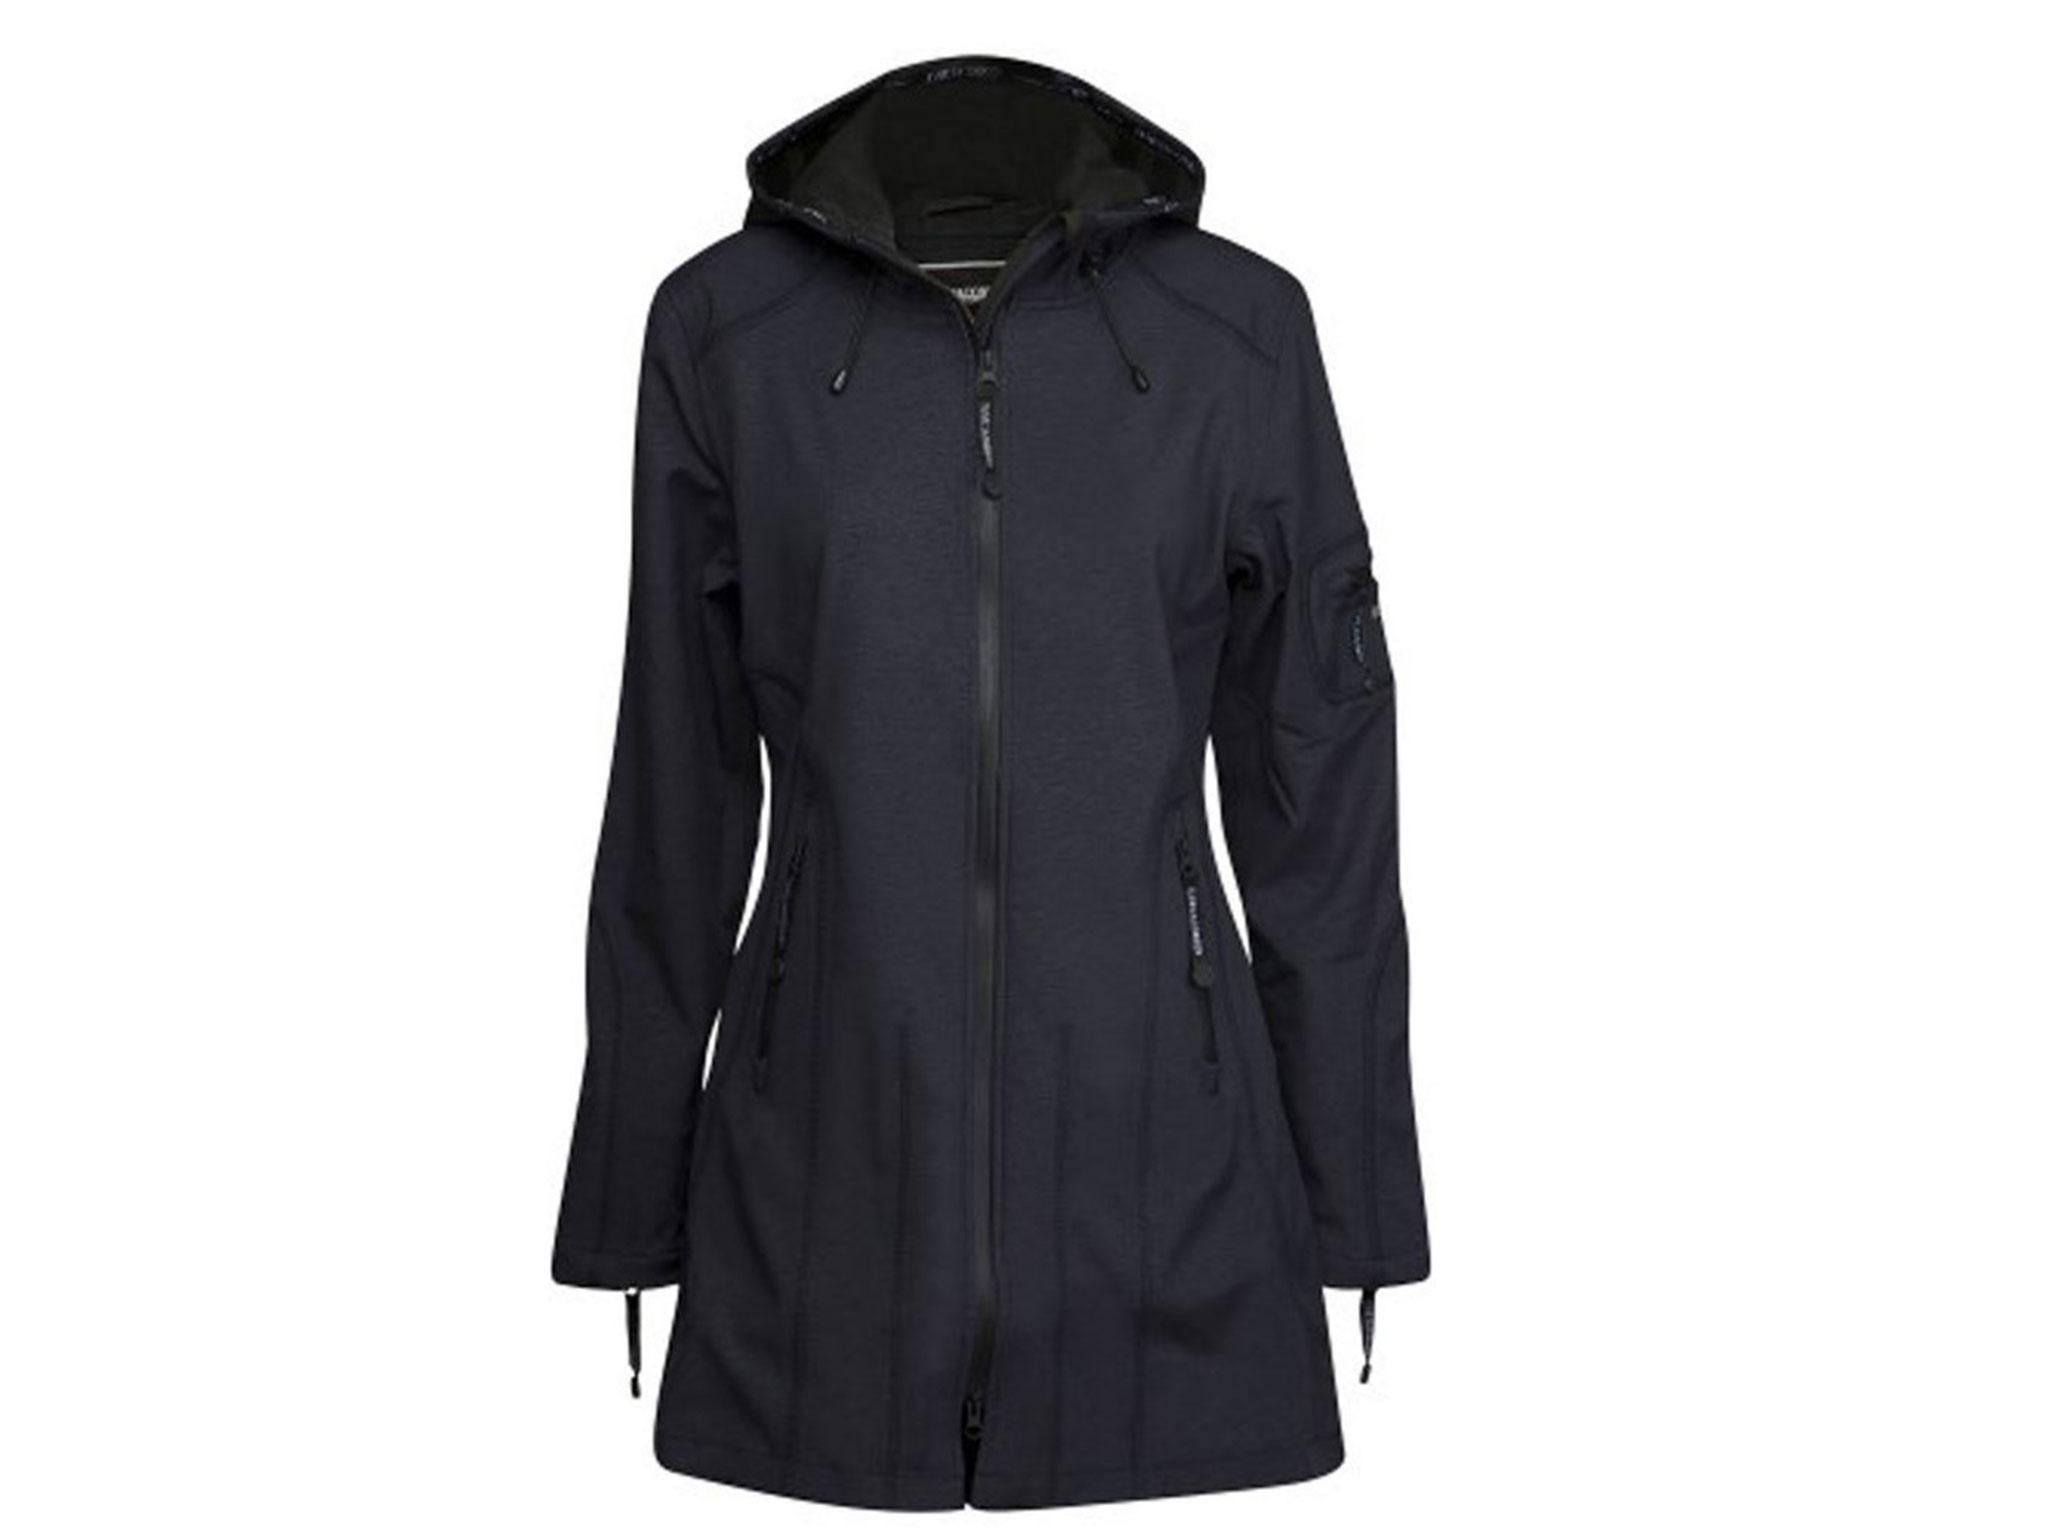 a099c192290a Ilse Jacobsen Softshell Jacket  £195.95, Outdoor Supply